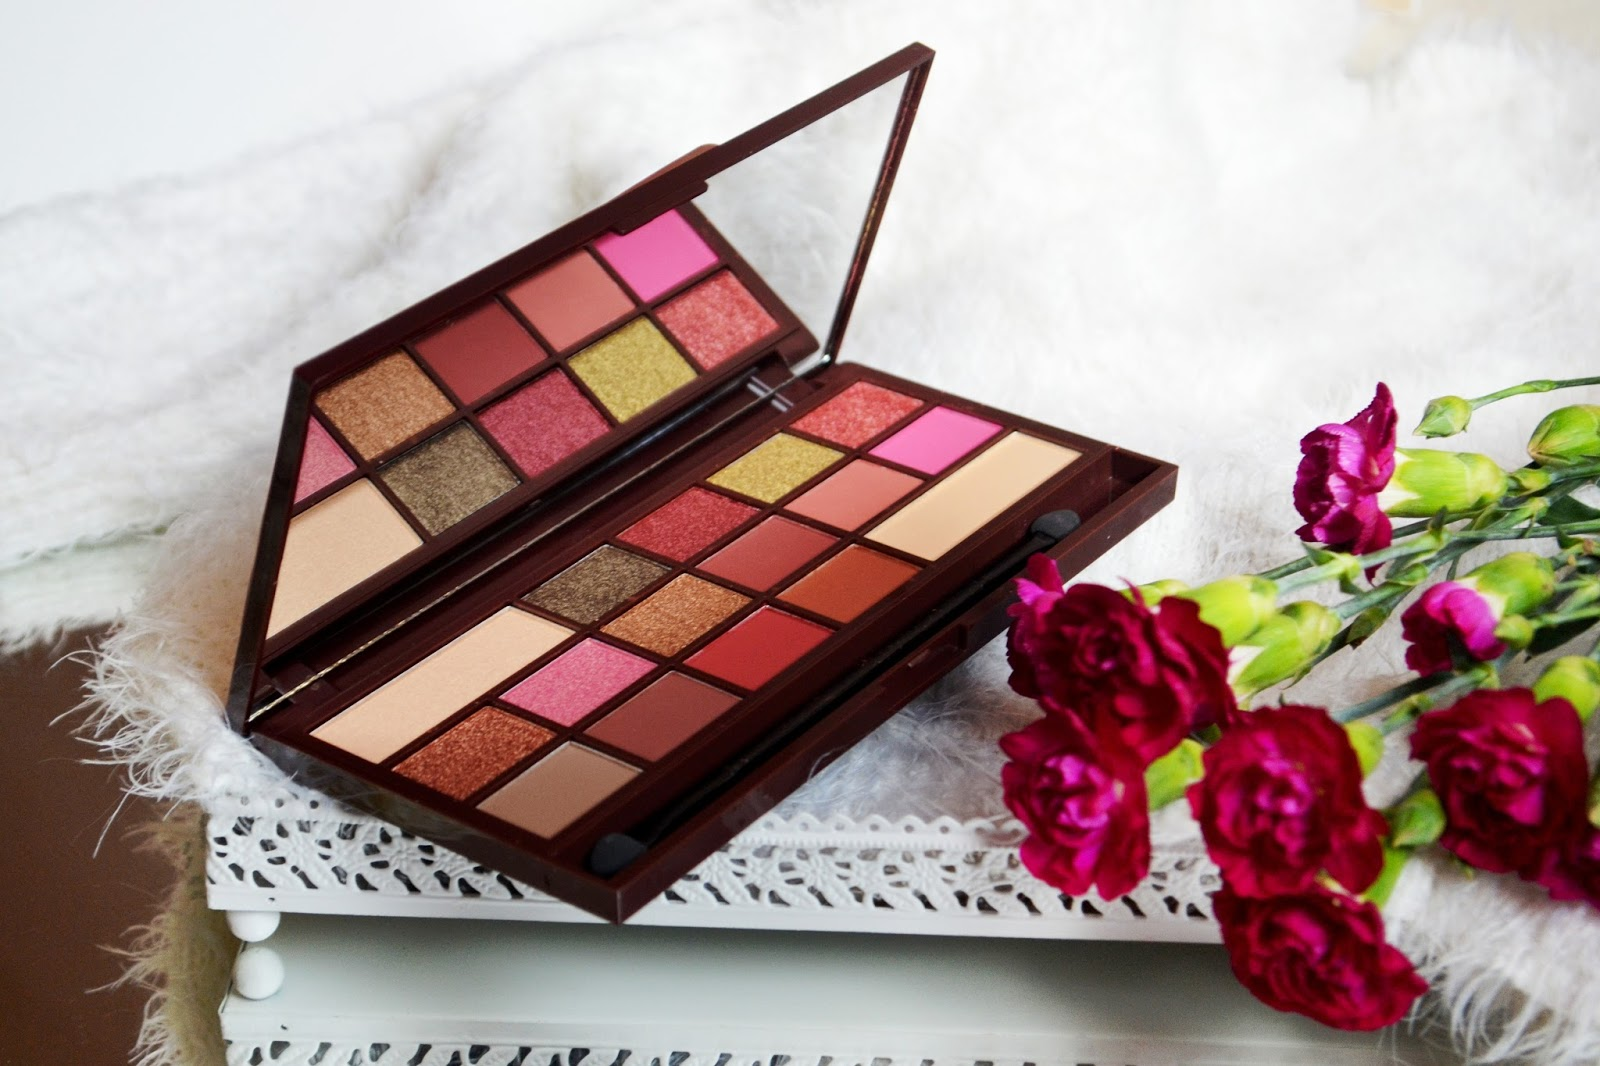 Makeup revolution rose gold recenzja